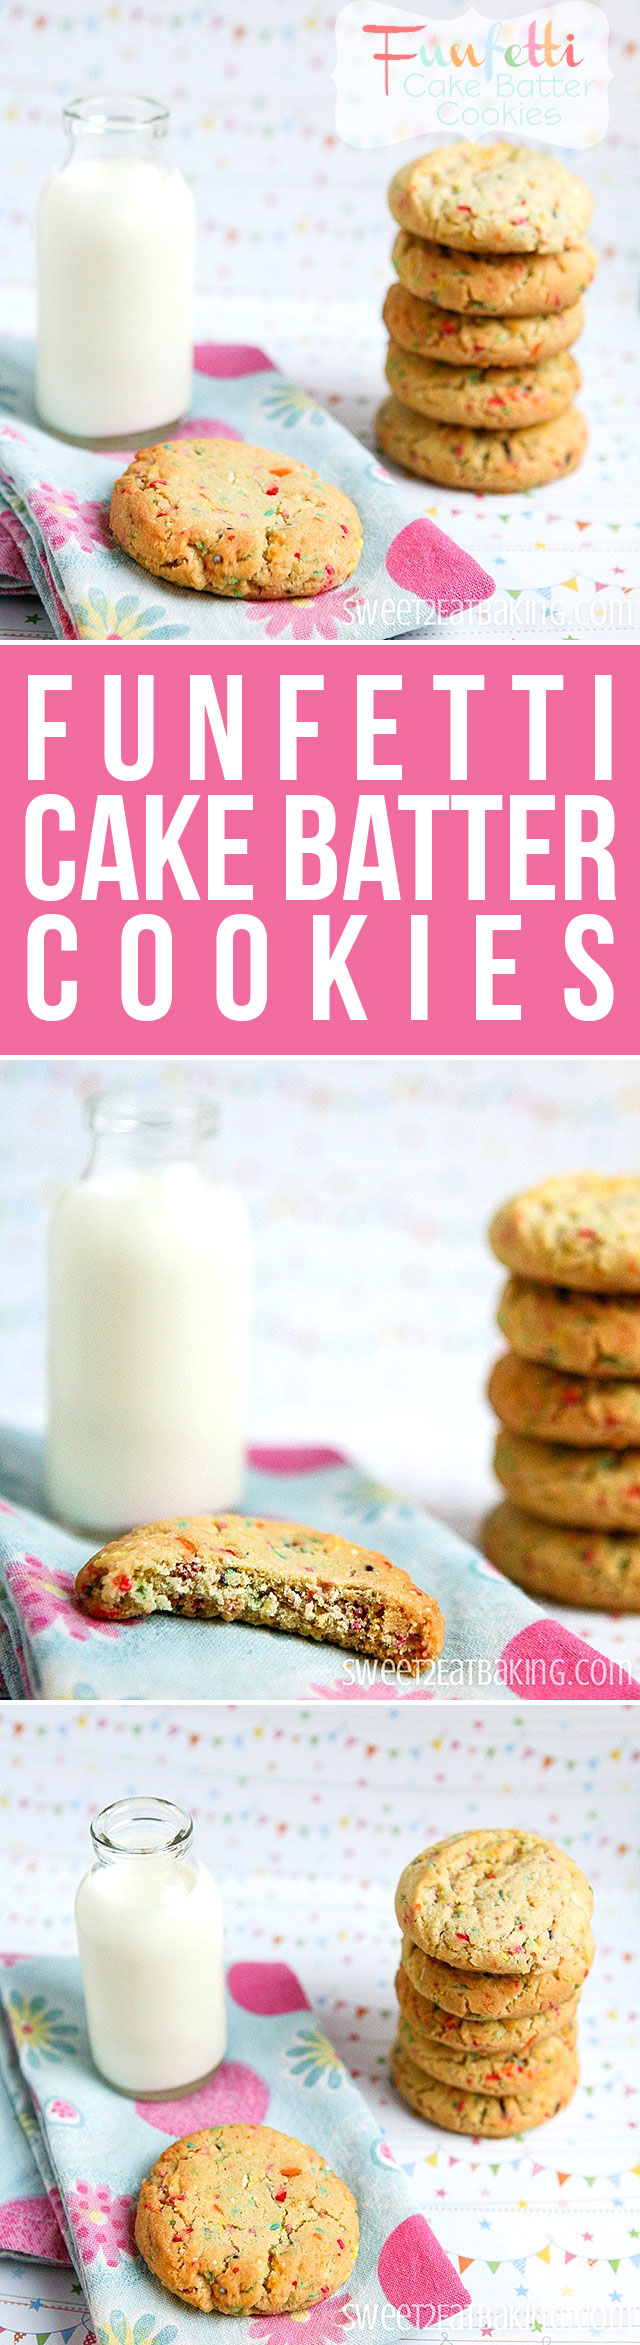 Funfetti Cake Batter Cookies by Sweet2EatBaking.com | Tastes like cake batter, but without the box cake mix! A super delicious cookie with a textured crunch from the sprinkles!